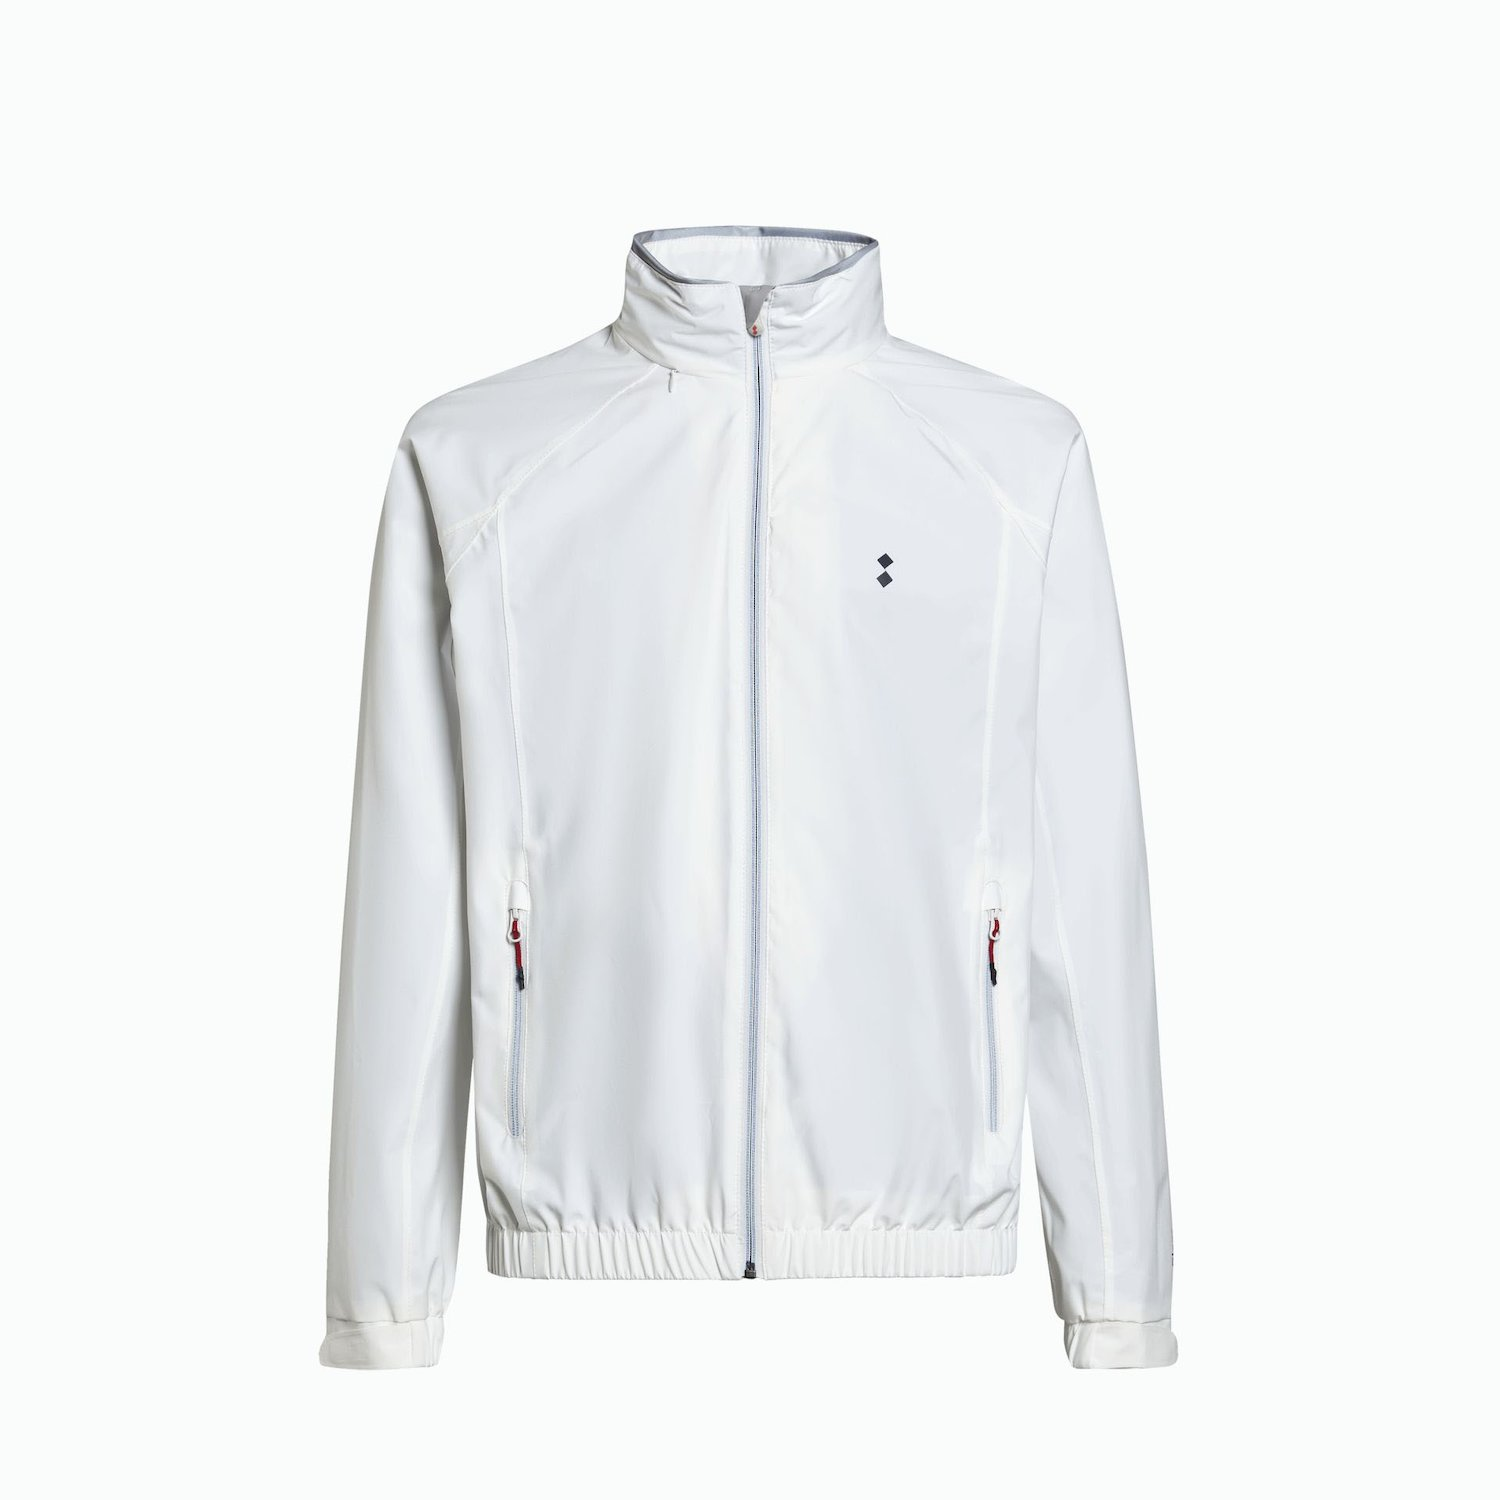 Siffert Jacket - Tiza